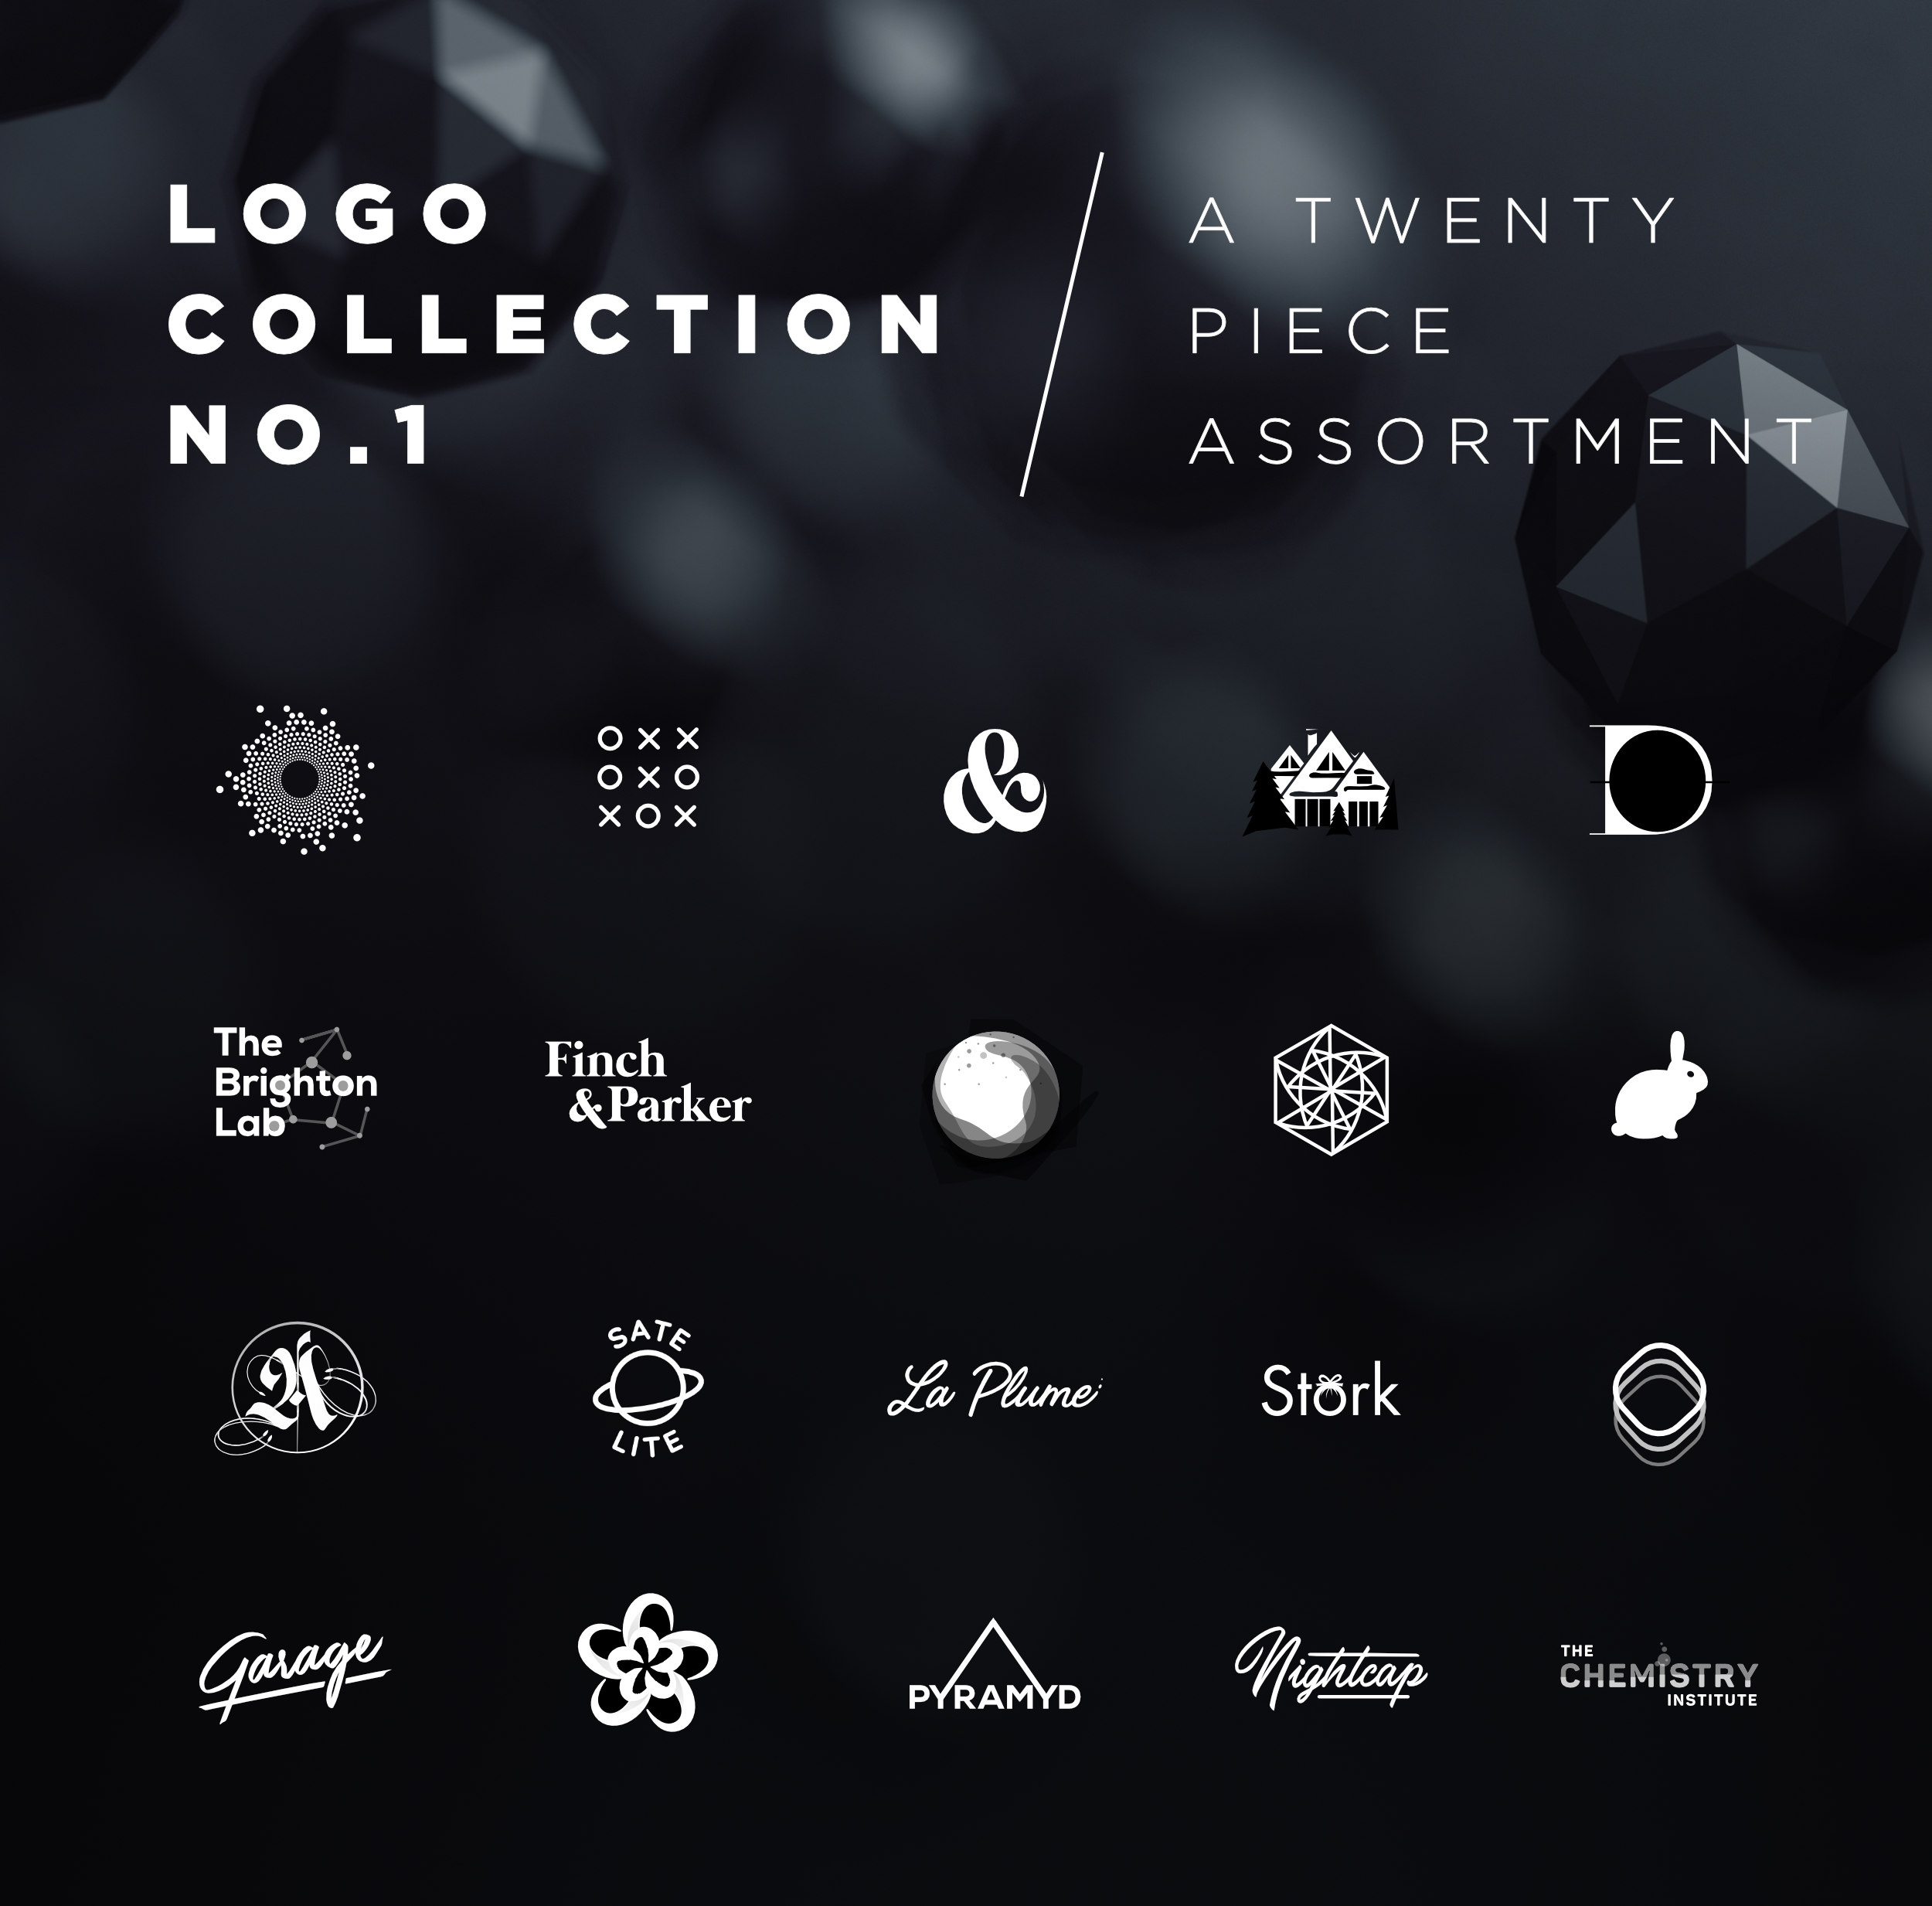 Meg Wehrlen's collection of logos including type based logos, minimal, conceptual, script, custom hand lettering and geometric. Featured on Behance.